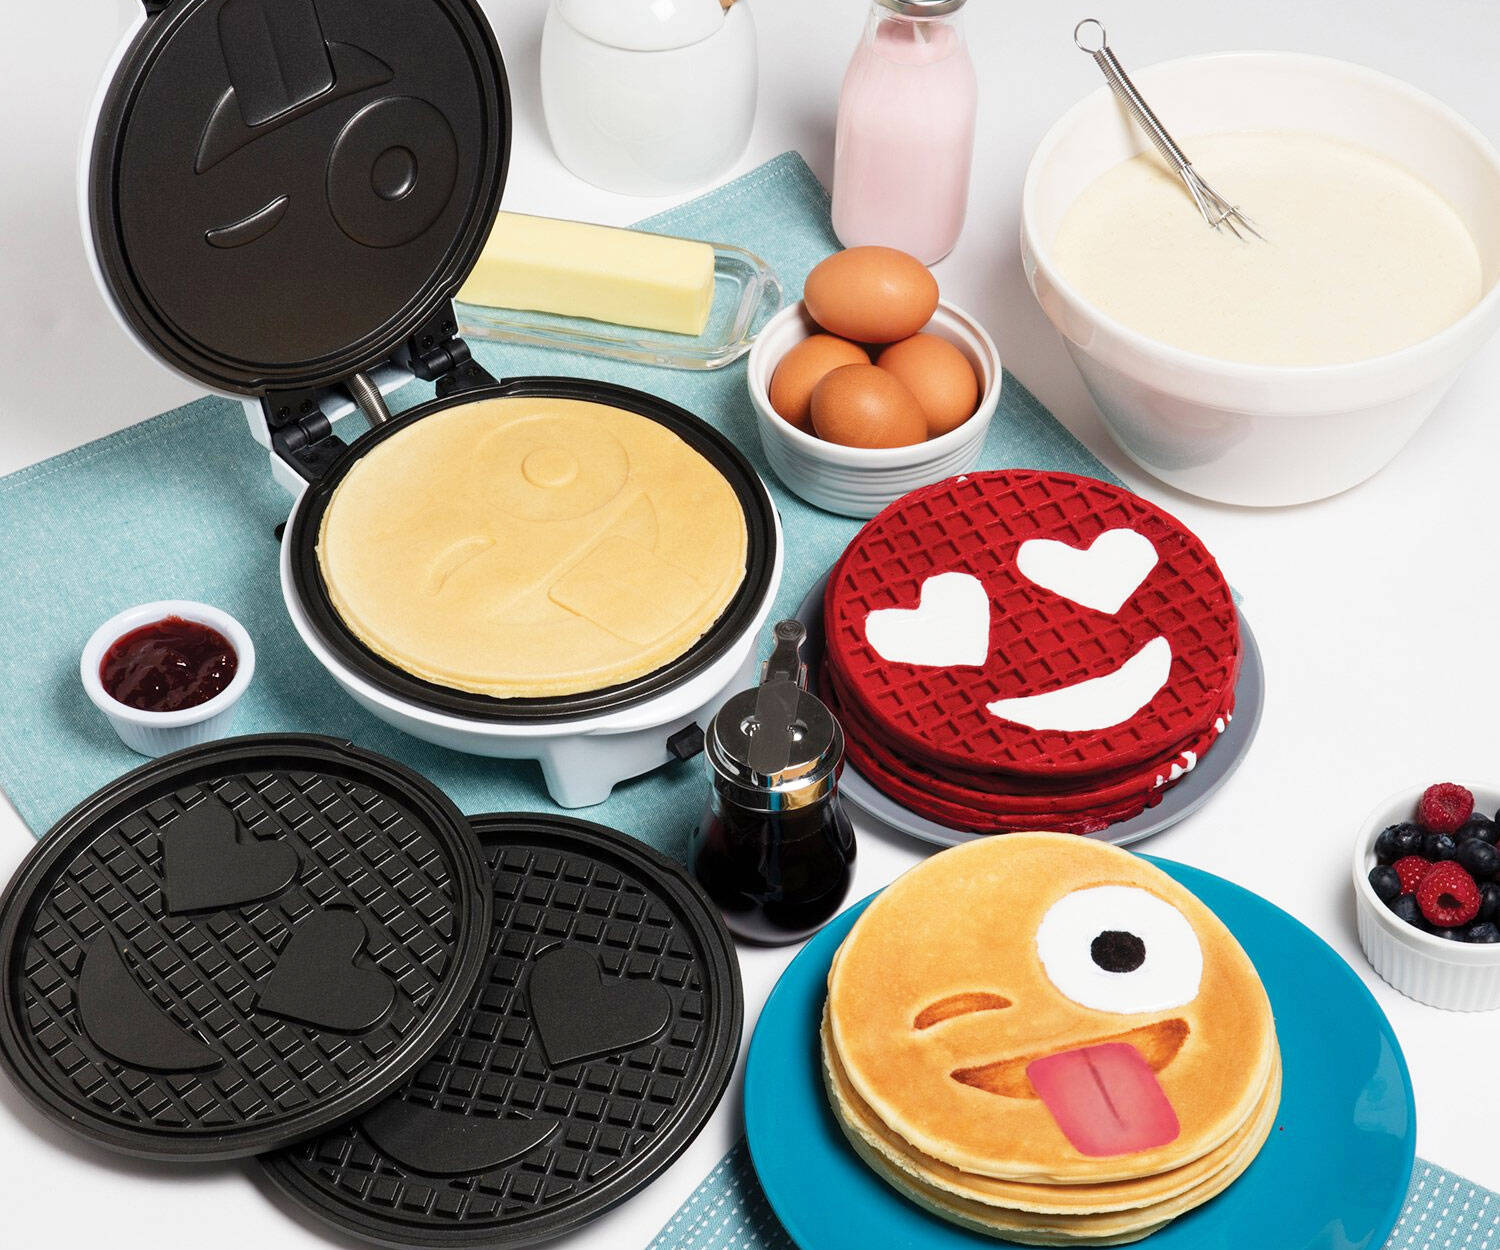 Emoji Waffle And Pancake Maker - http://coolthings.us